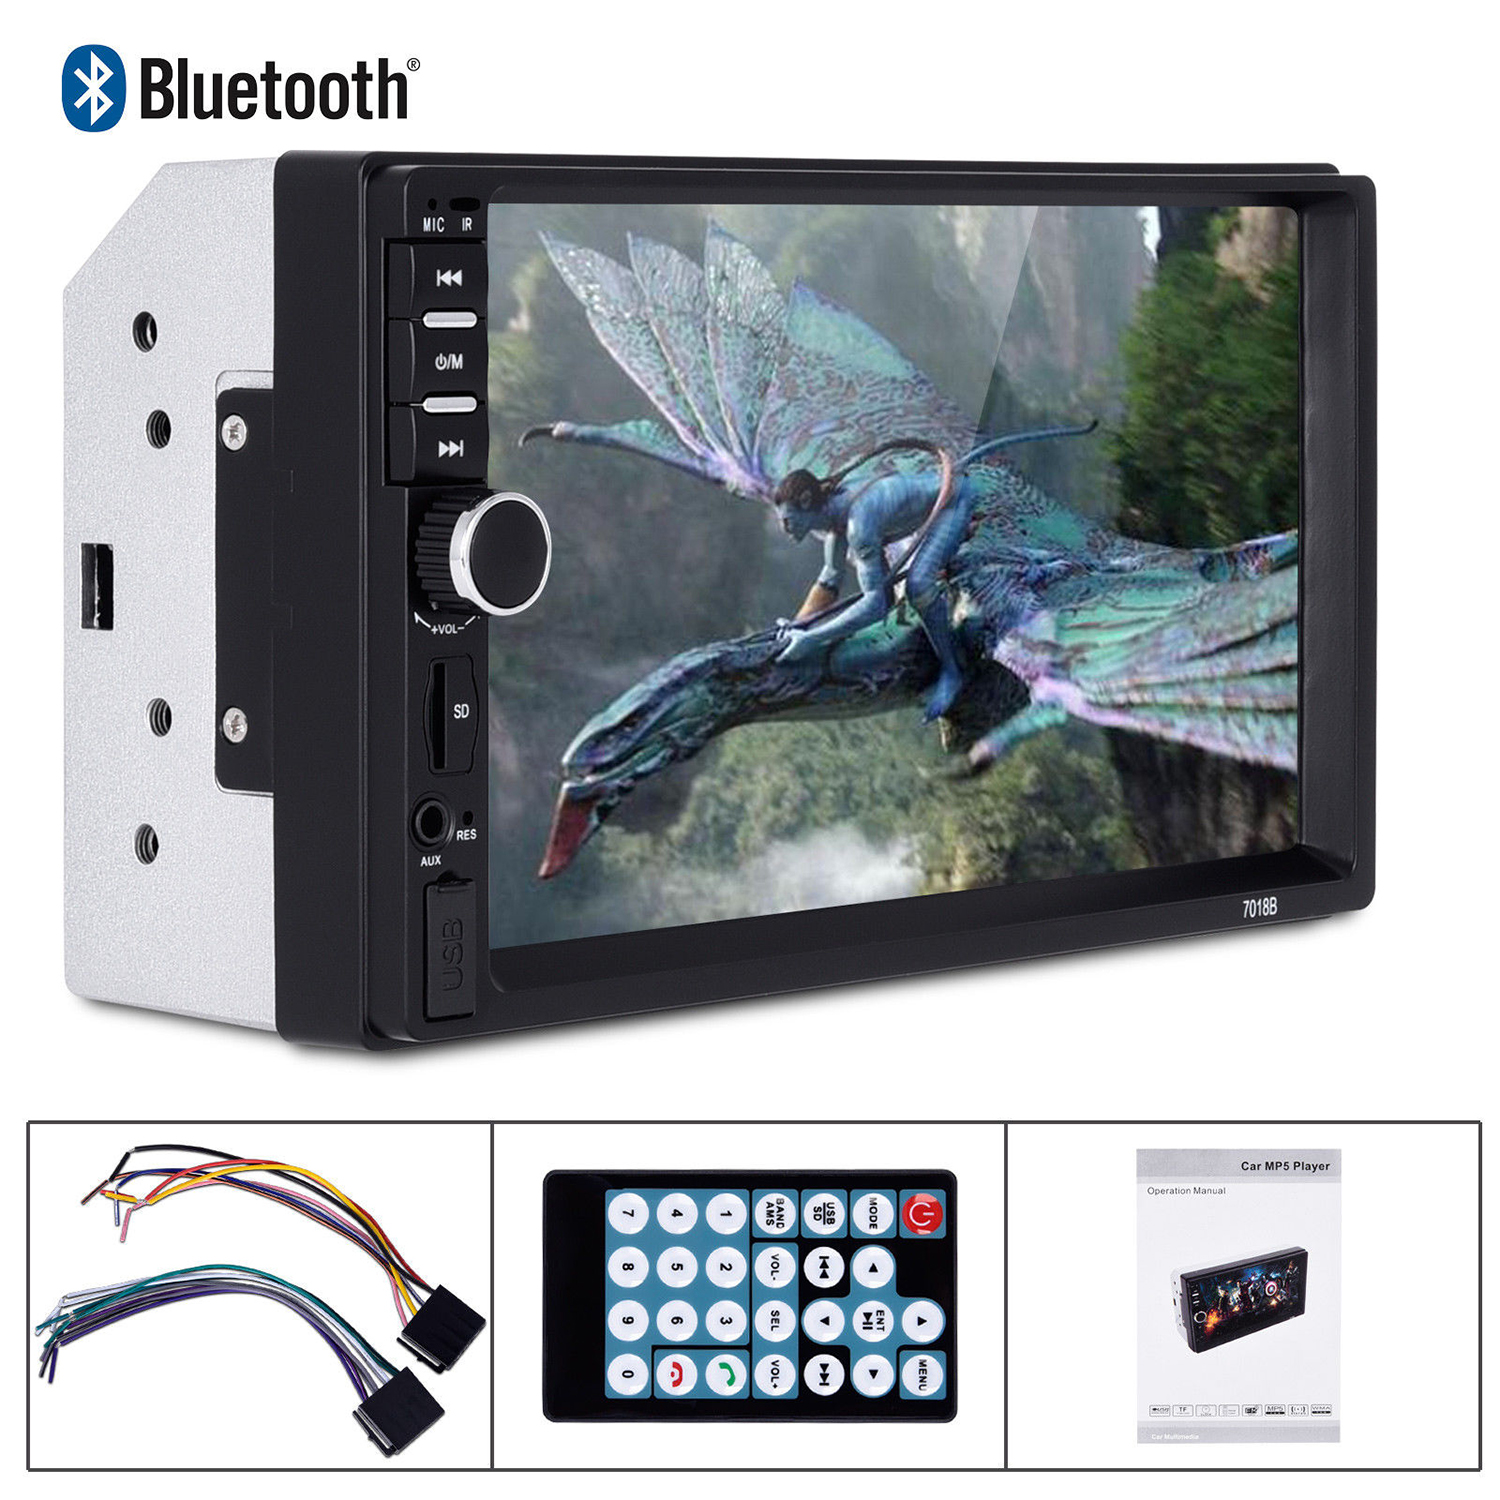 New 7 2 Din Touch Screen Car MP5 Player Bluetooth Stereo FM Radio USB/TF AUX In With Rear View Camera